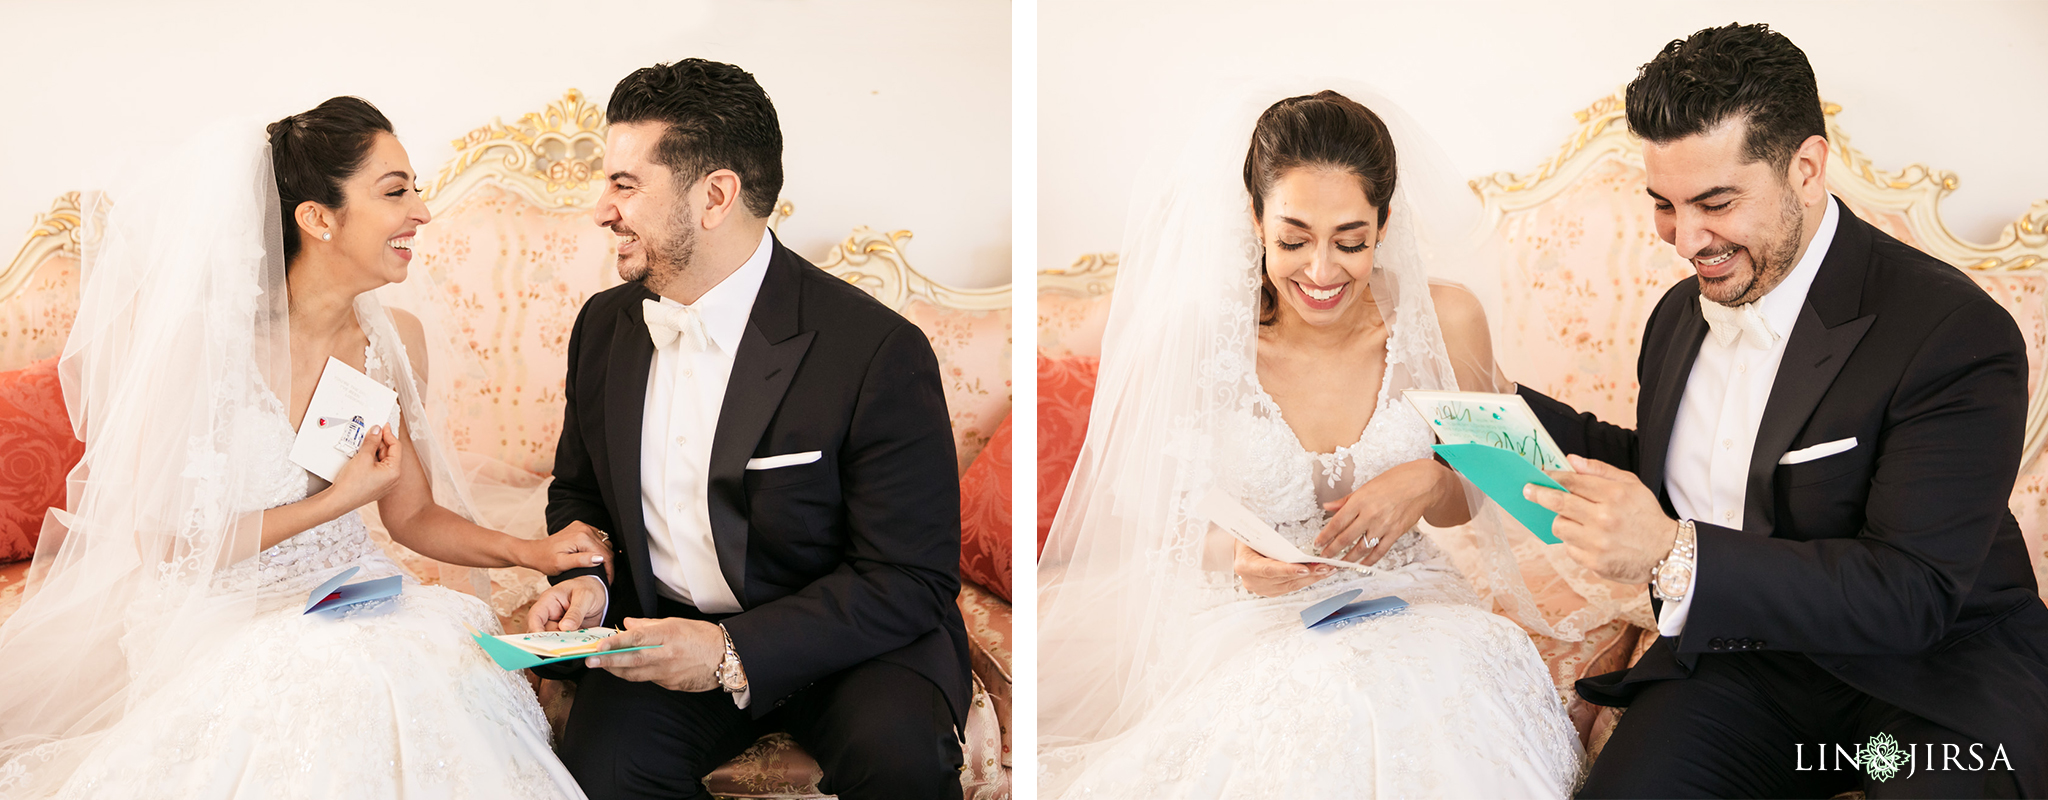 12 SkyStudio Los Angeles Persian Wedding Photography